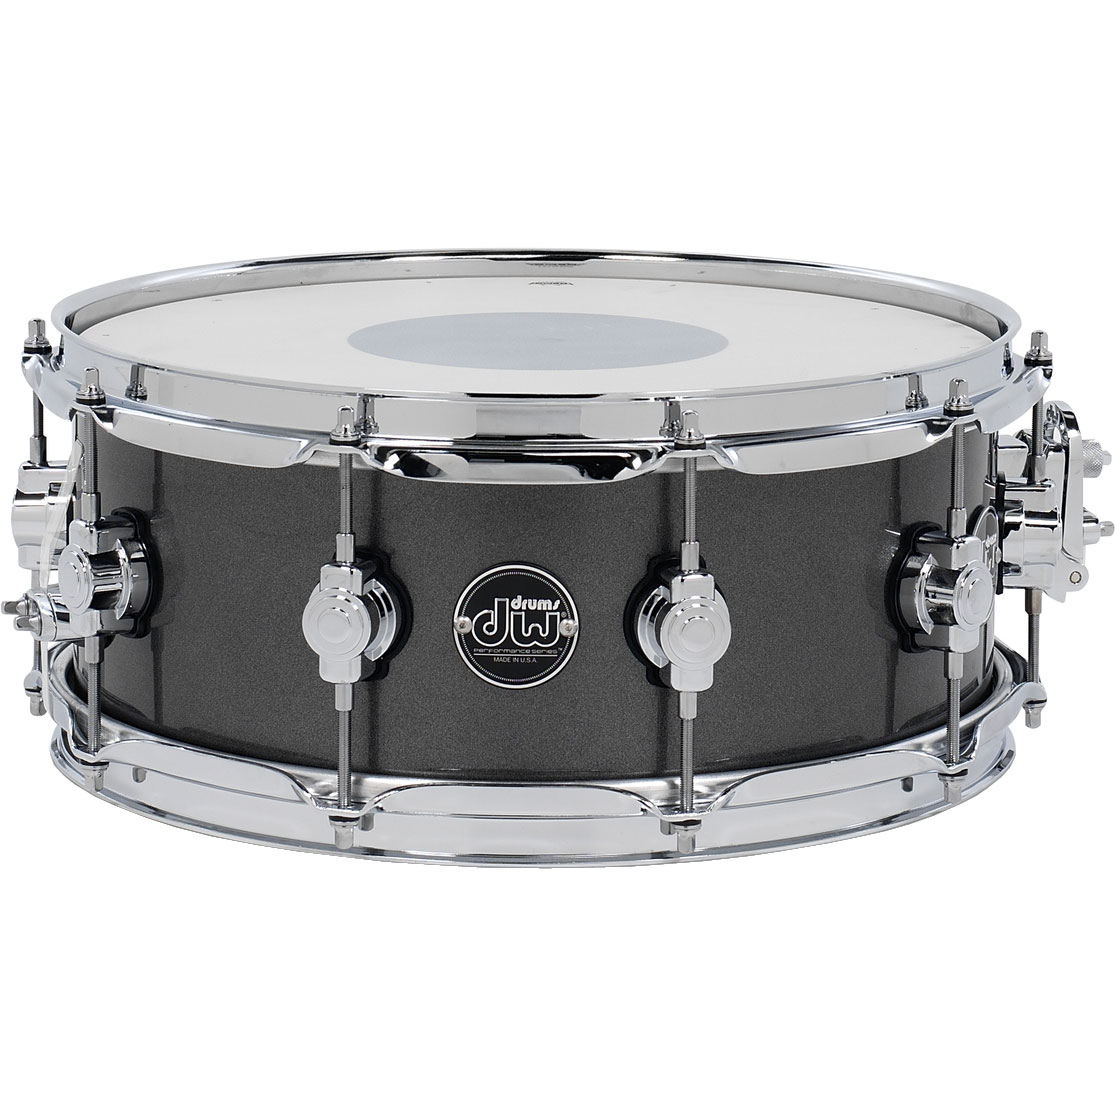 """DW 5.5"""" x 14"""" Performance Series Snare Drum in Specialty Lacquer Finish"""